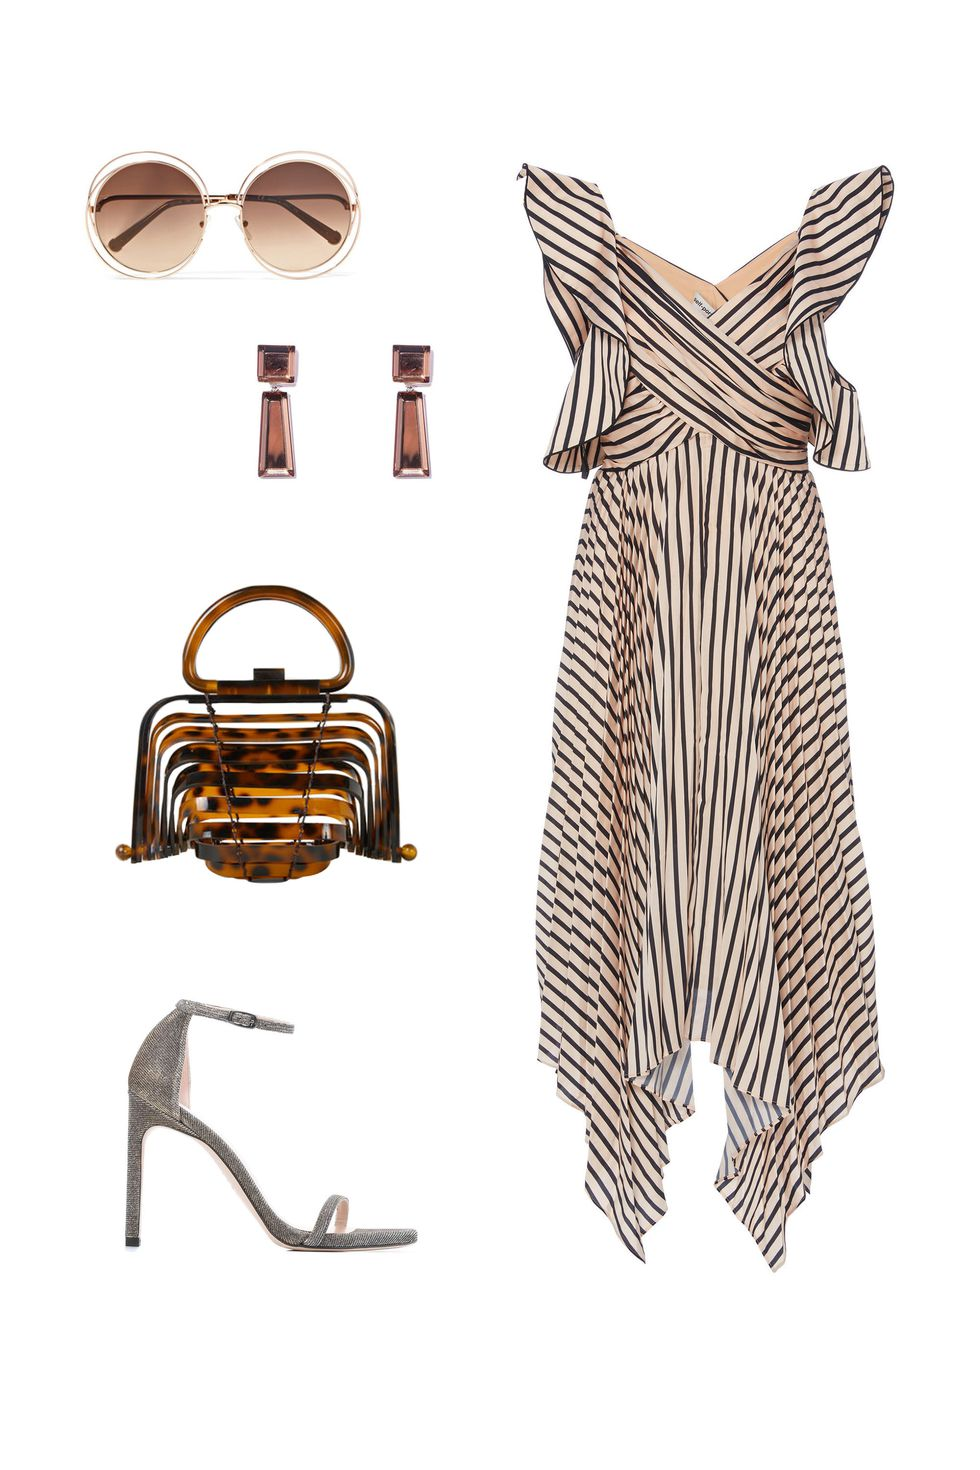 what-to-wear-for-a-fall-wedding-guest-outfit-autumn-on-the-dock-tan-dress-midi-stripe-brown-bag-earrings-sun-dinner.jpg